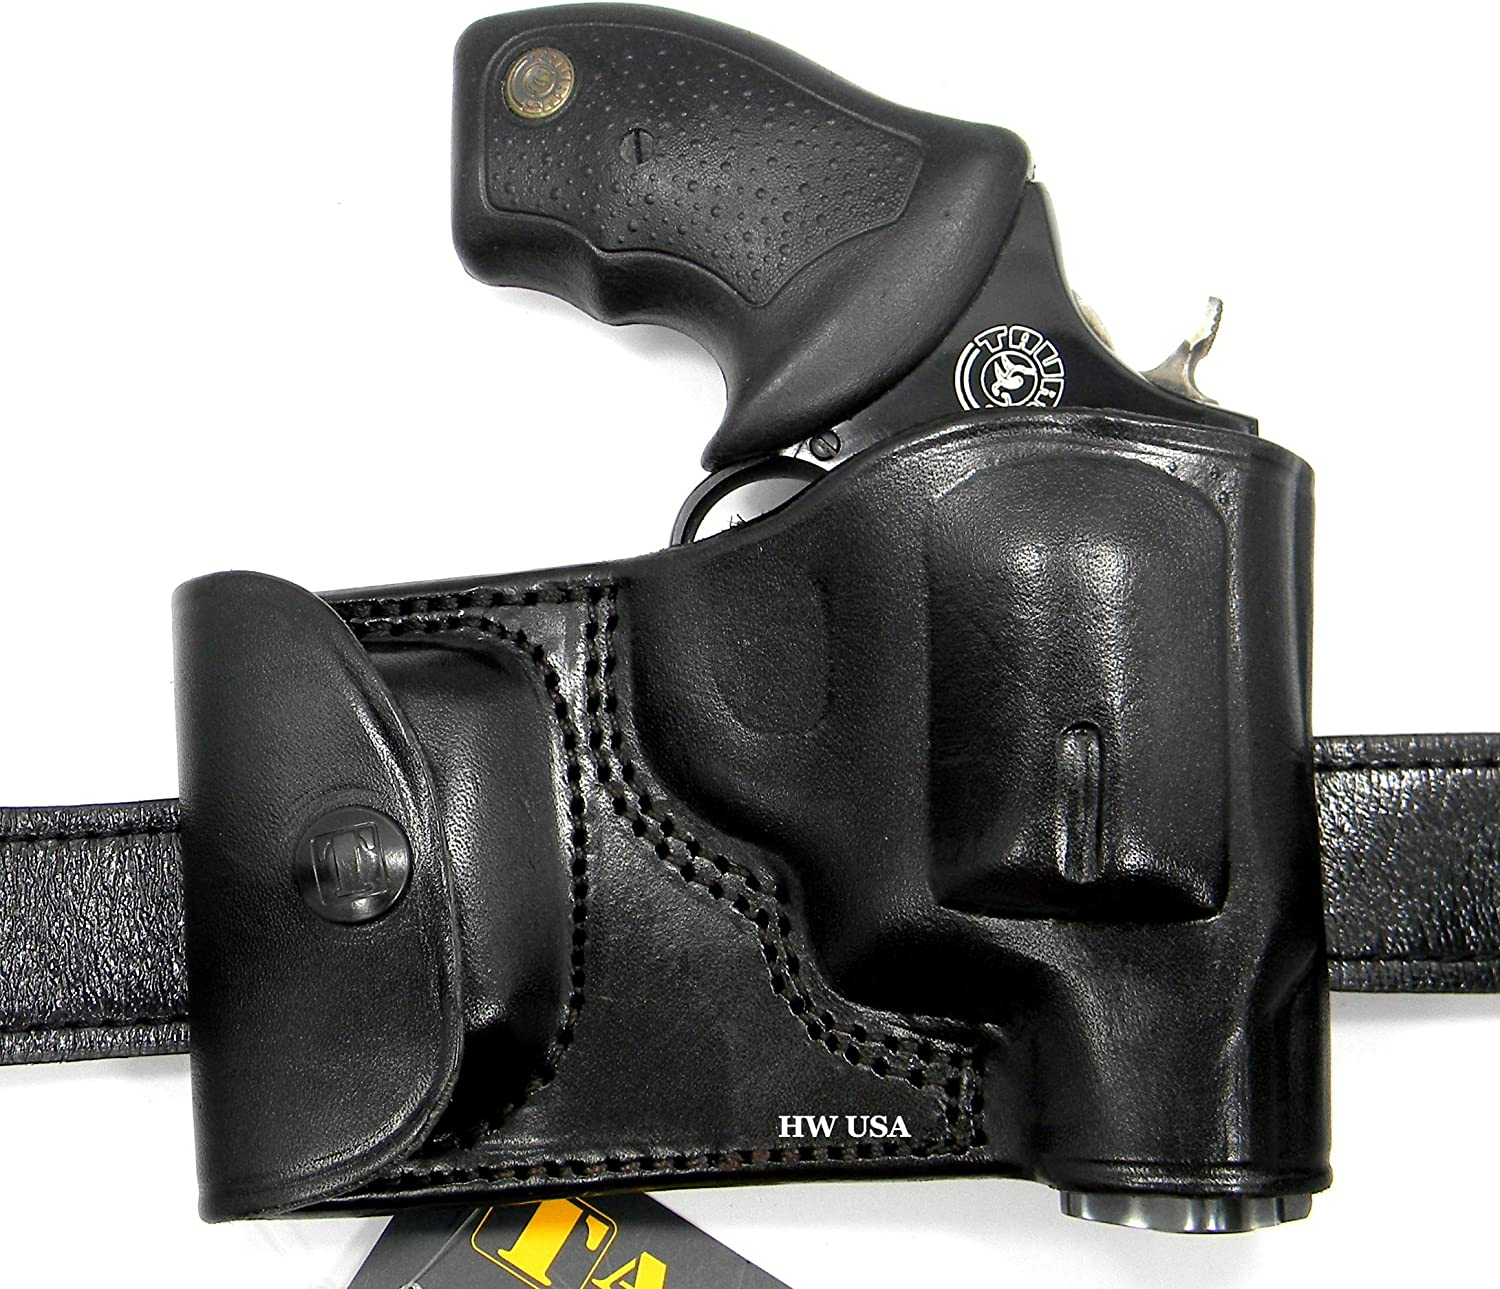 HOLSTERMART USA TAGUA Sales Ranking TOP8 for sale Premium Right Belt Slide with Hand Holster